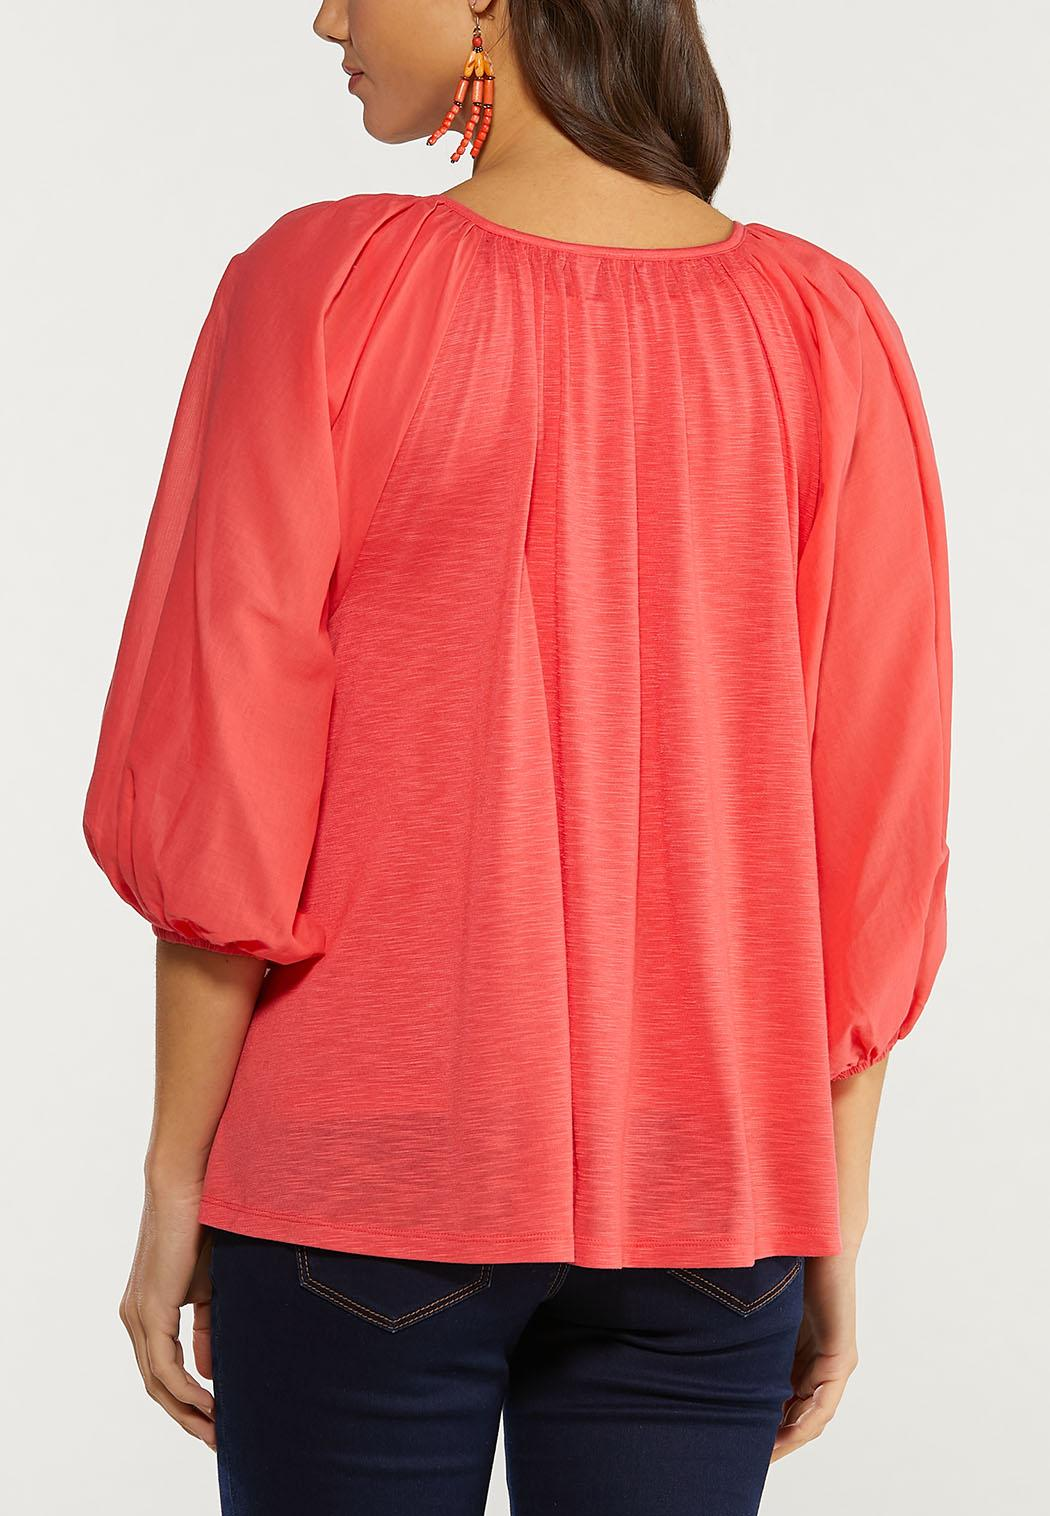 Plus Size Spice Coral Balloon Sleeve Top (Item #44493738)